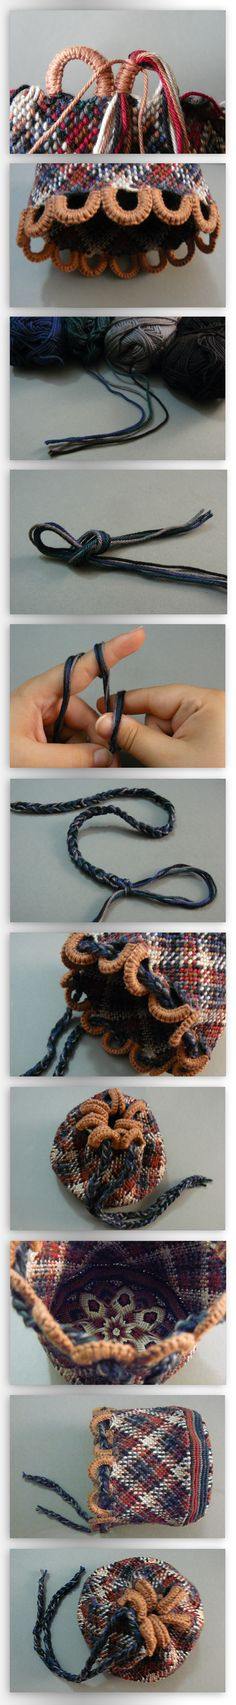 Pouch Tutorial Part V (Cord and finished Pouch) by ~nimuae on deviantART